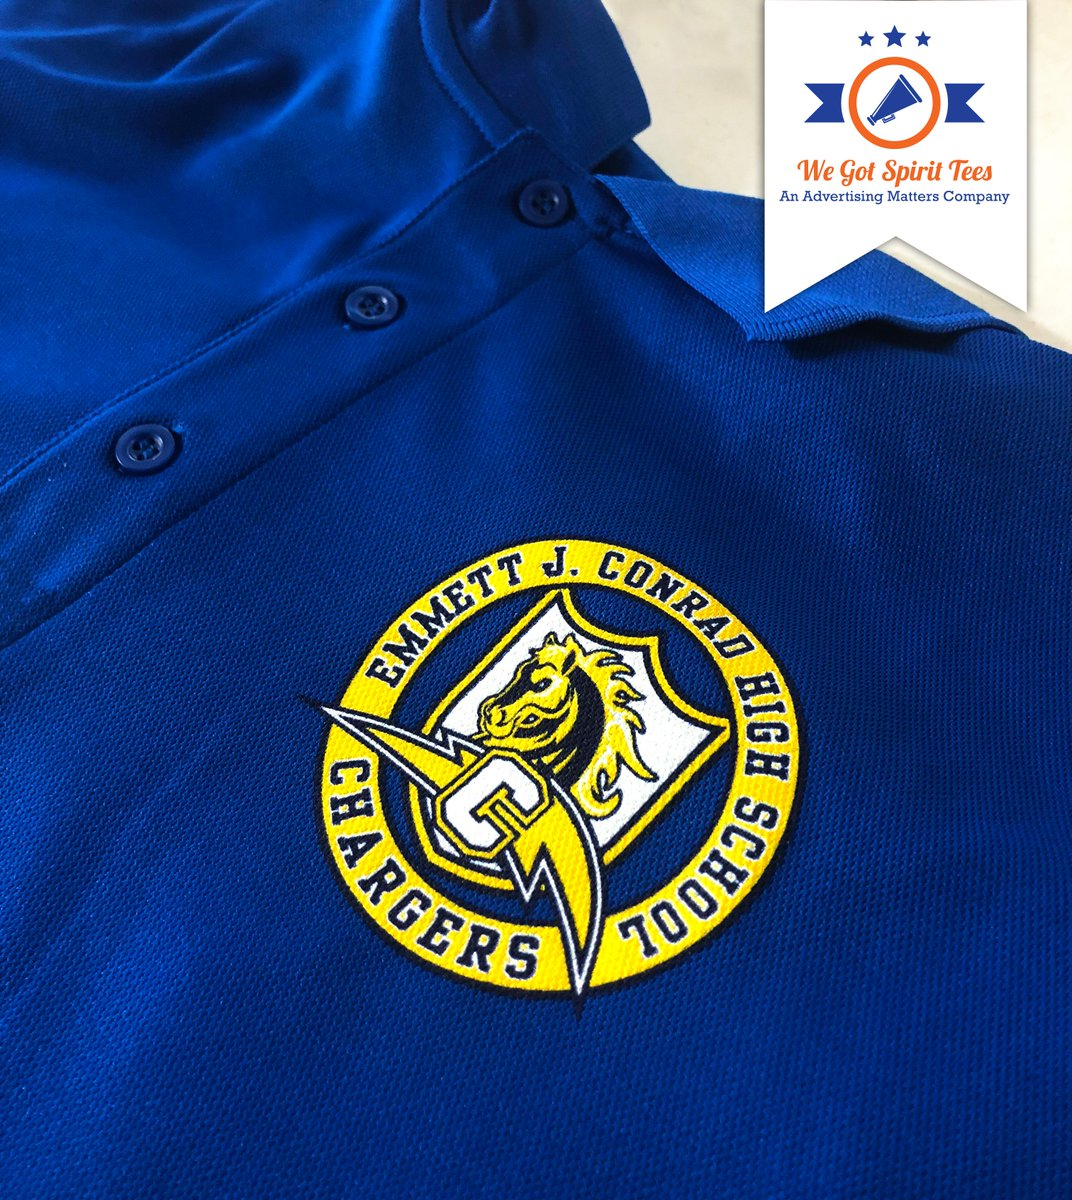 Yes! We can screen print on a polo shirt. At Advertising Matters, we can print on several types of shirts to your need.  For more information call or email us today!  Information is available in bio.  #WeGotSpiritTees https://t.co/4zM04HUFjT